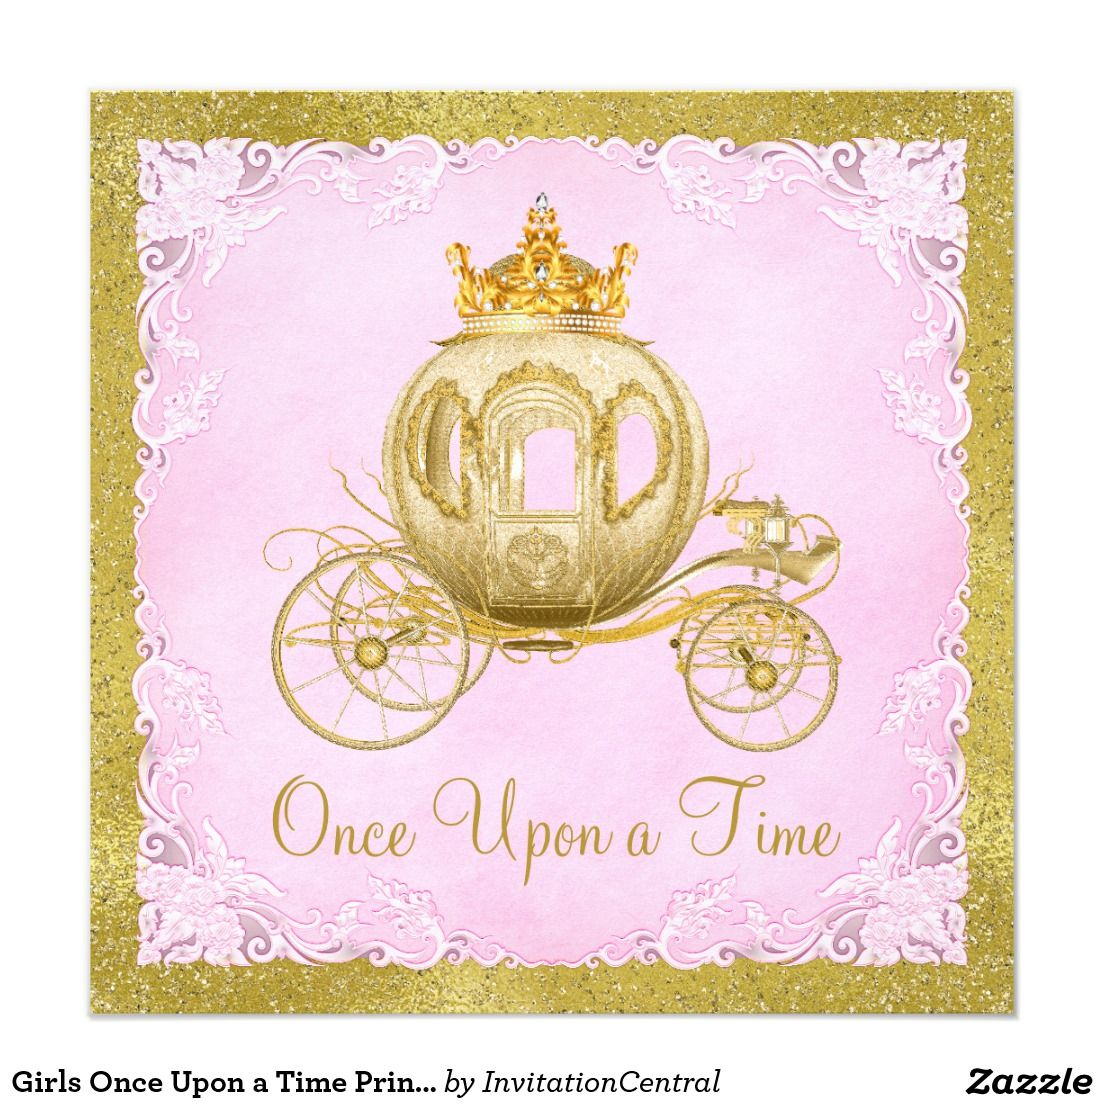 Girls Once Upon A Time Princess Carriage Birthday Card Kids